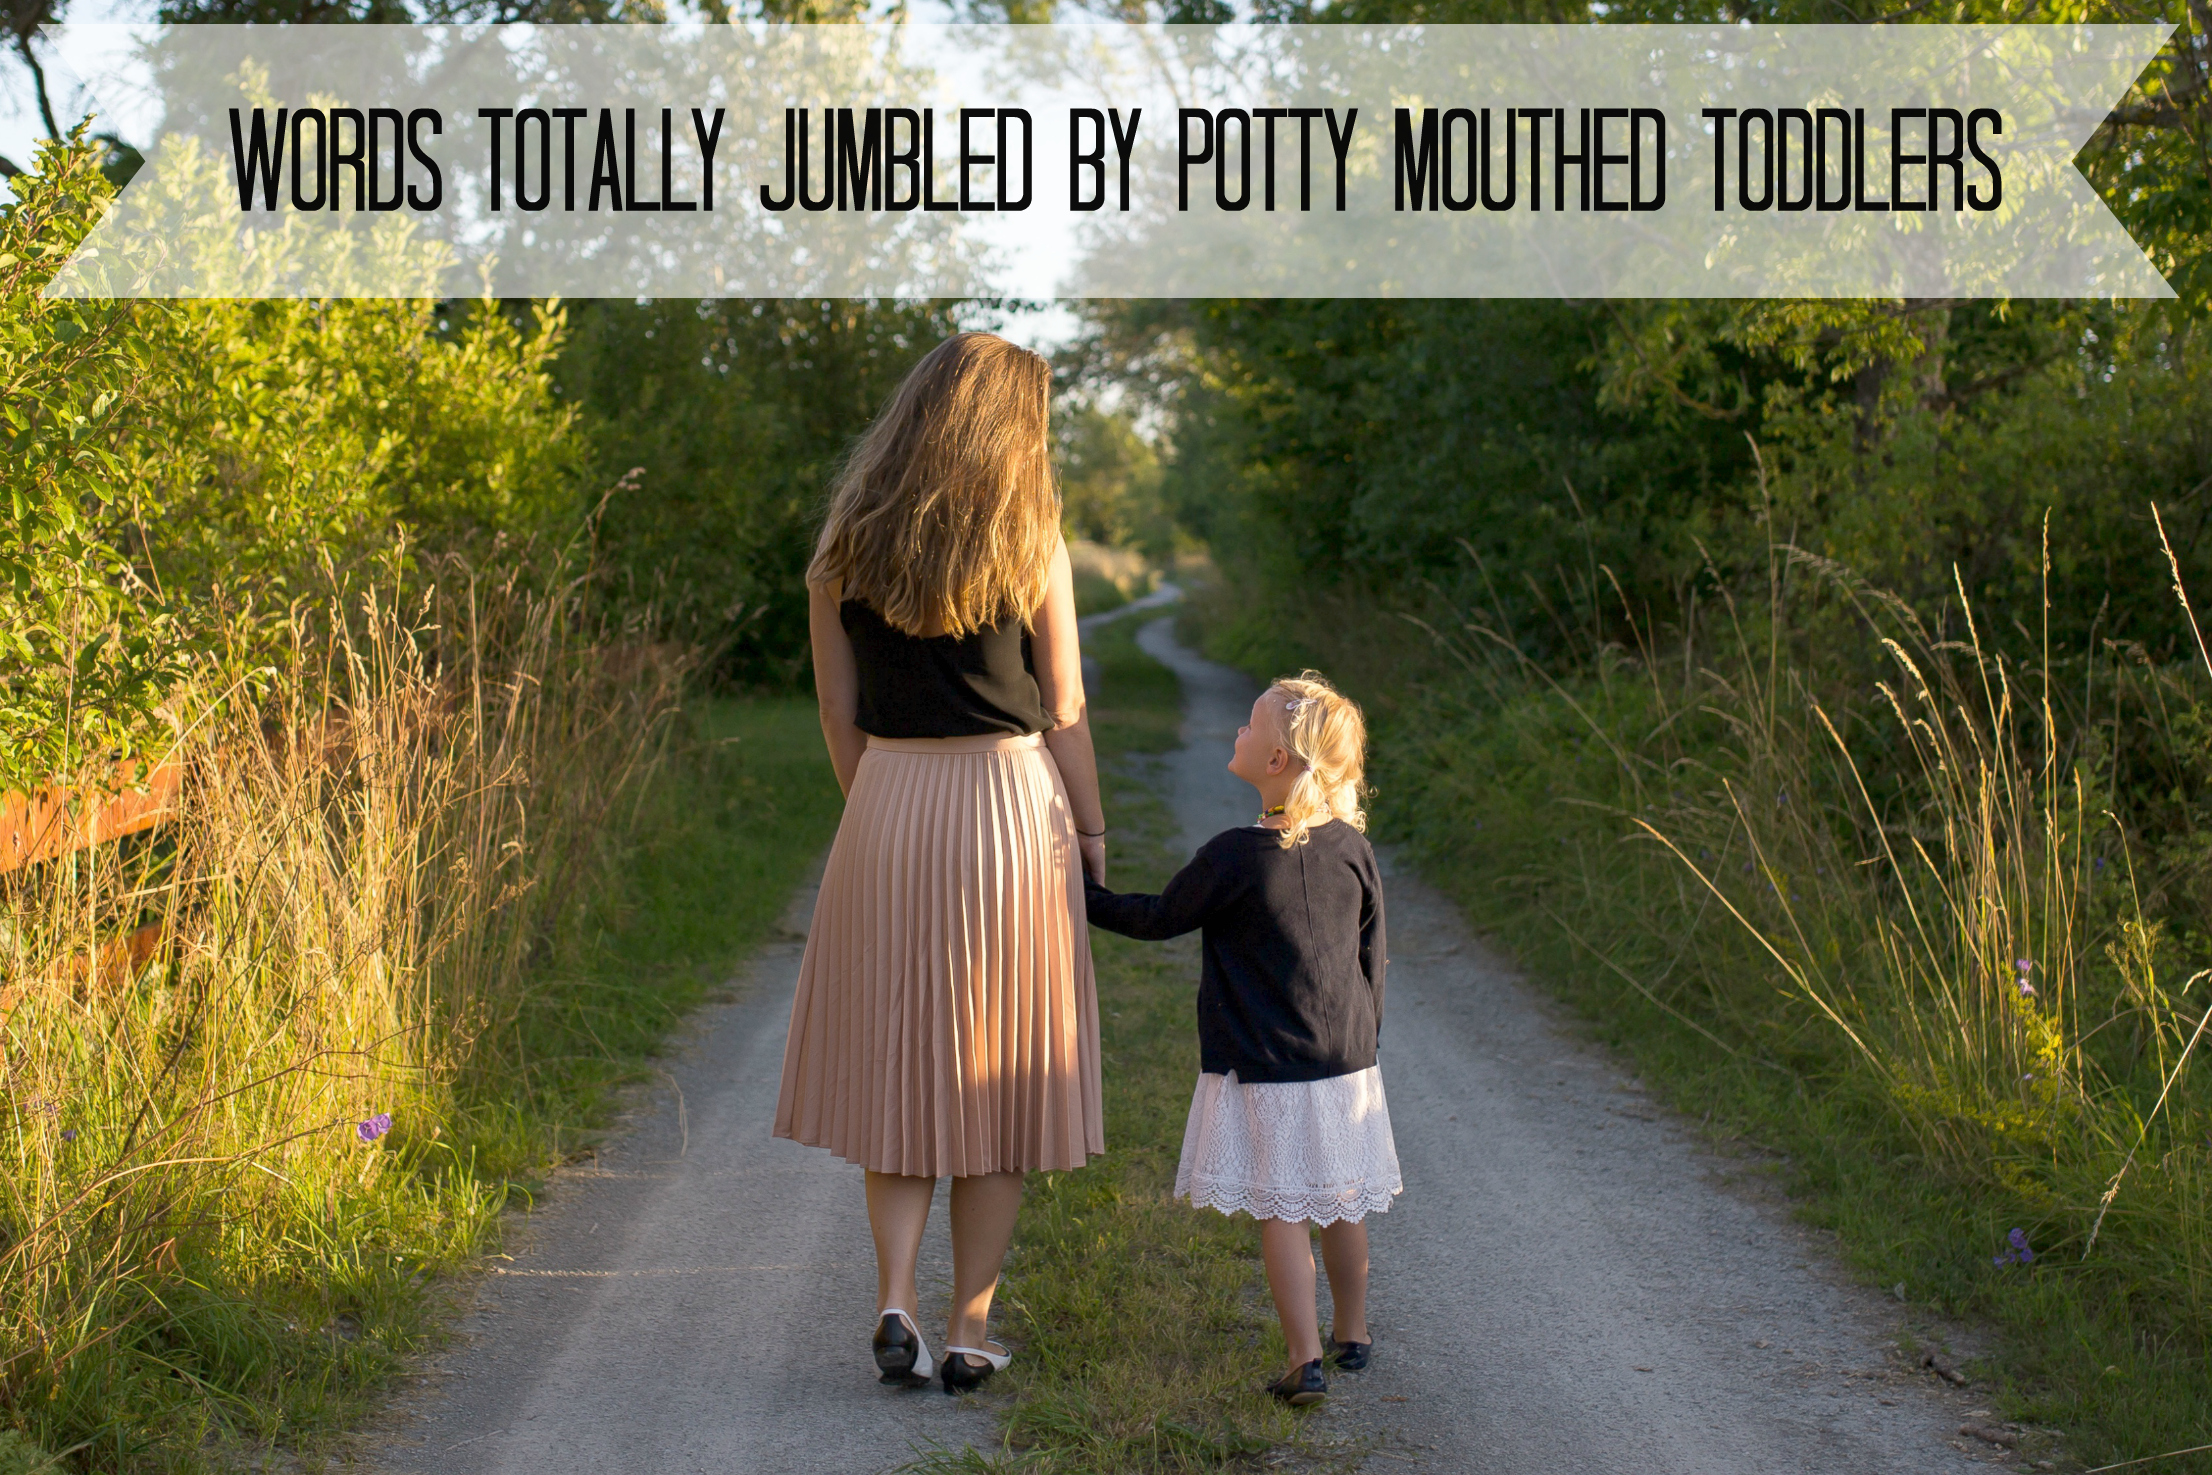 words totally jumbled by potty mouthed toddlers